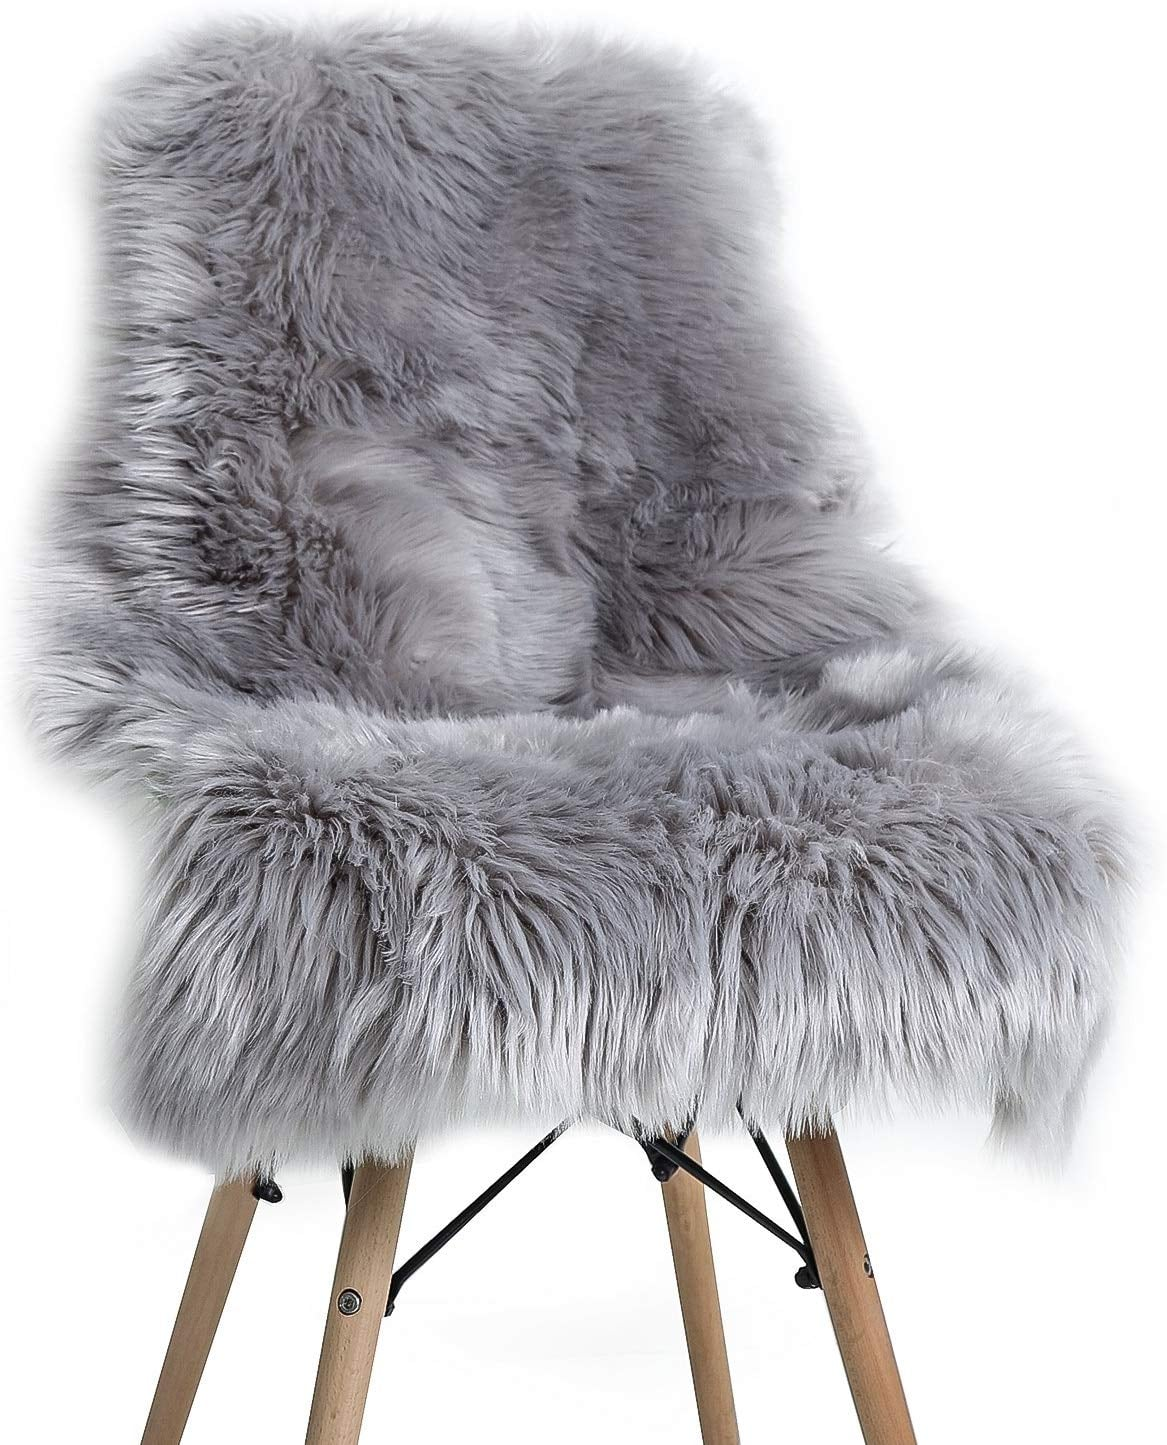 Yoh Soft Faux Sheepskin Chair Cover Seat Cushion The Best Pieces To Get That Scandanavian Home Decor Style Popsugar Home Photo 2